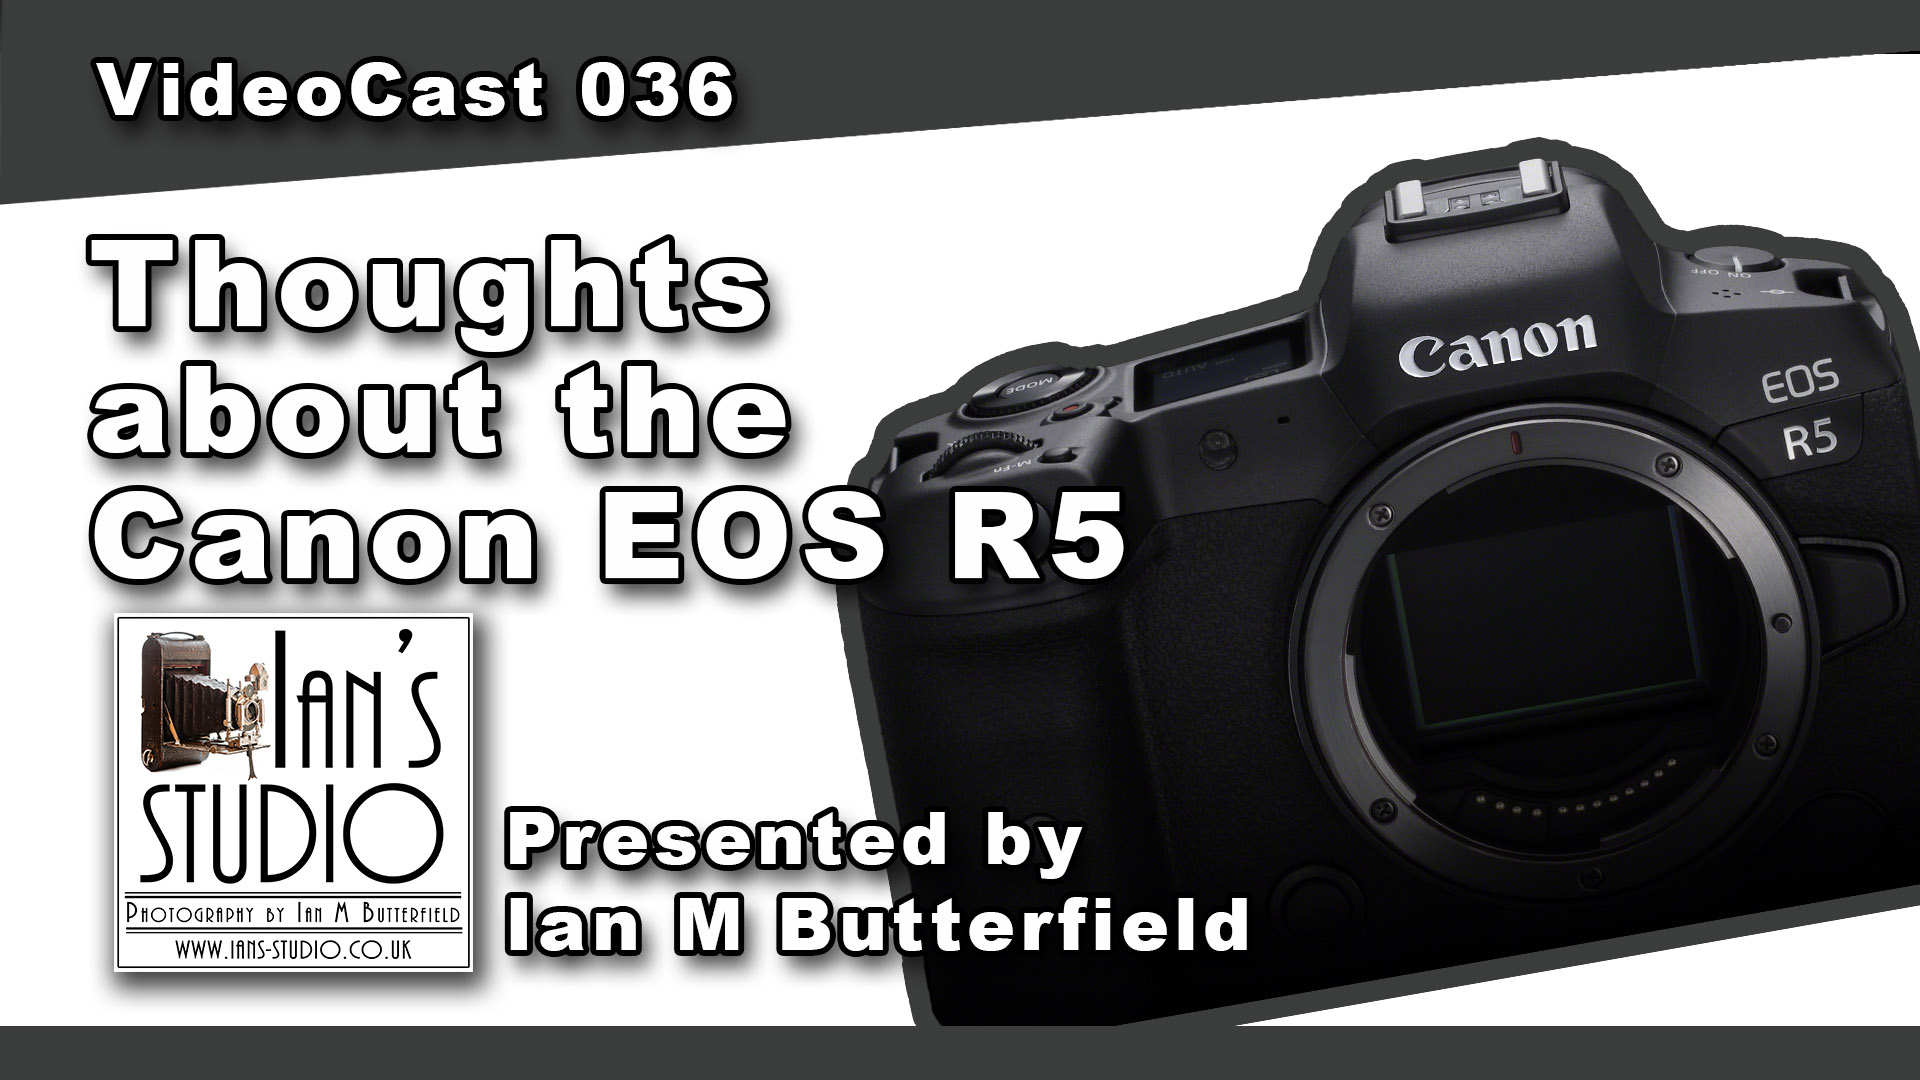 25 MAR 2020 VideoCast 036: Thoughts on the Canon EOS R5